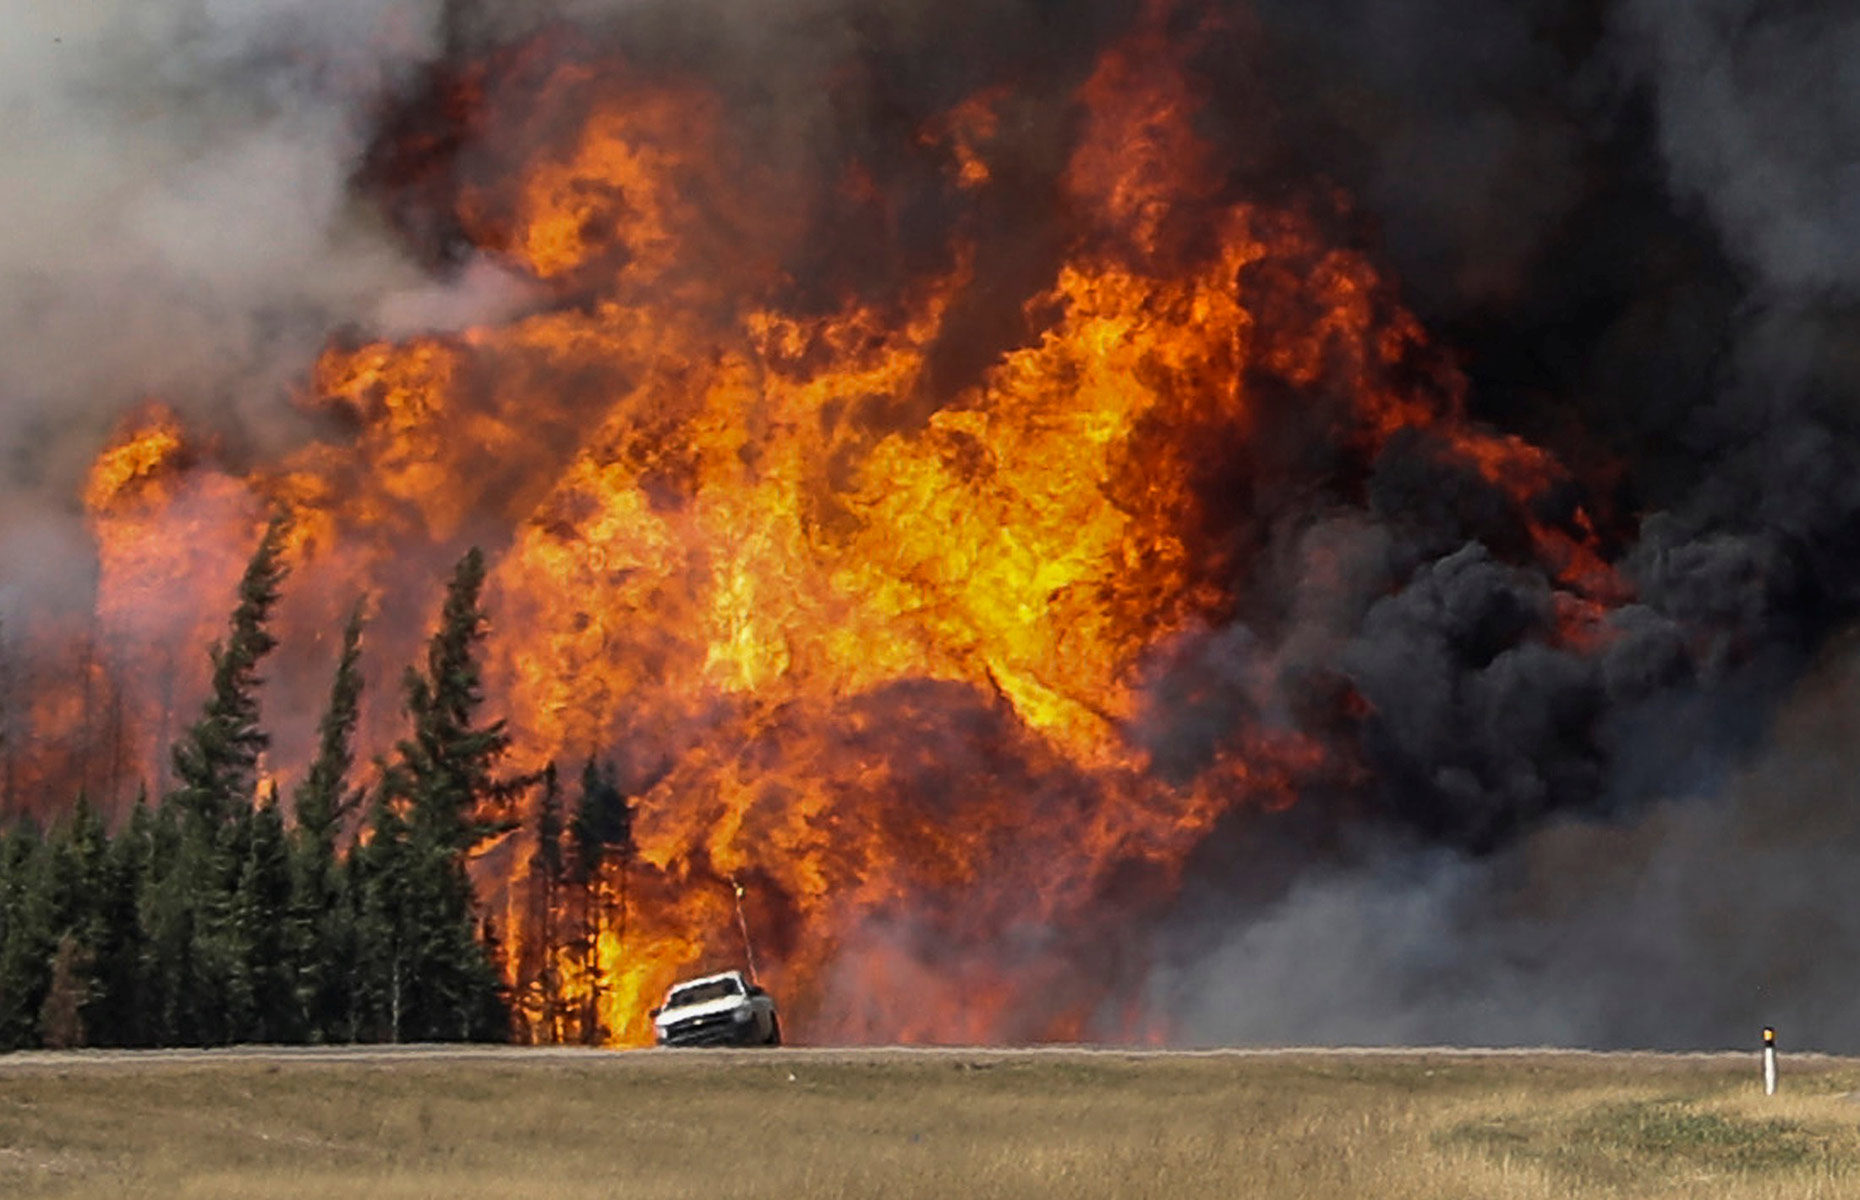 Smoke and flames from the wildfires erupt behind a car on the highway near Fort McMurray, Alta., May 7, 2016.